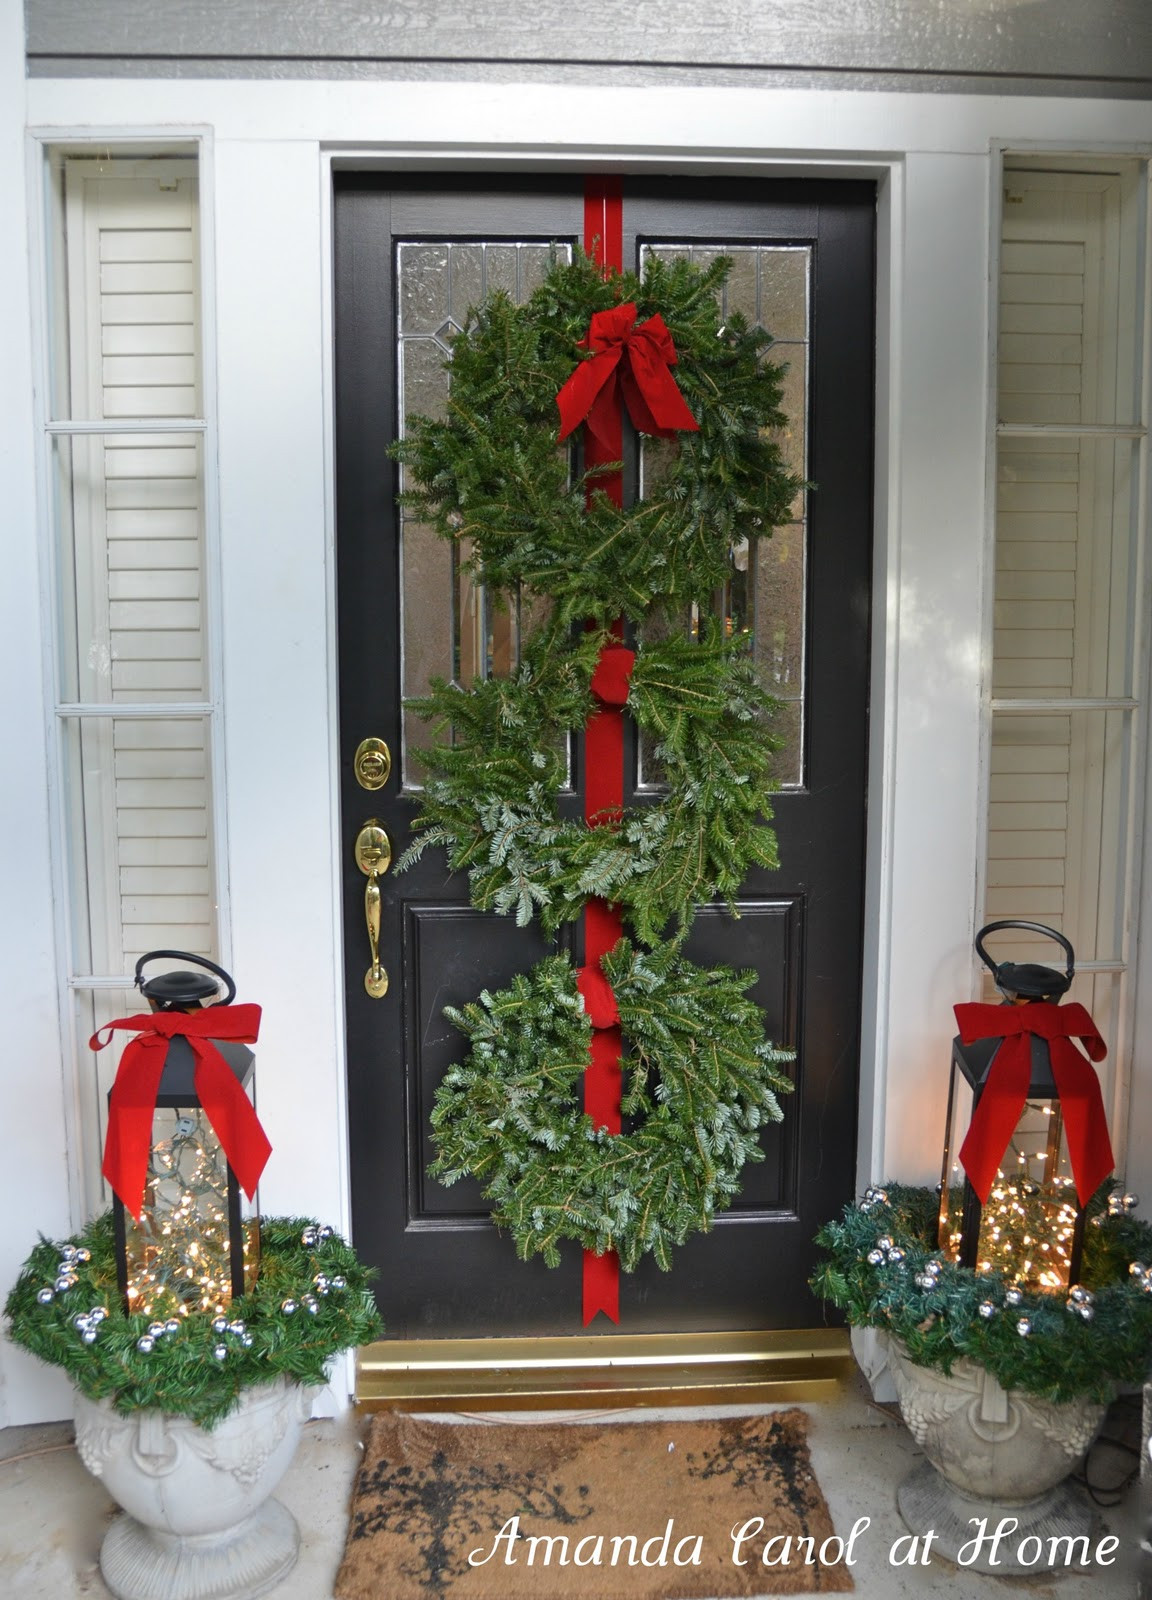 Christmas Decorations For Front Porch  Rustic Front Porch Ideas